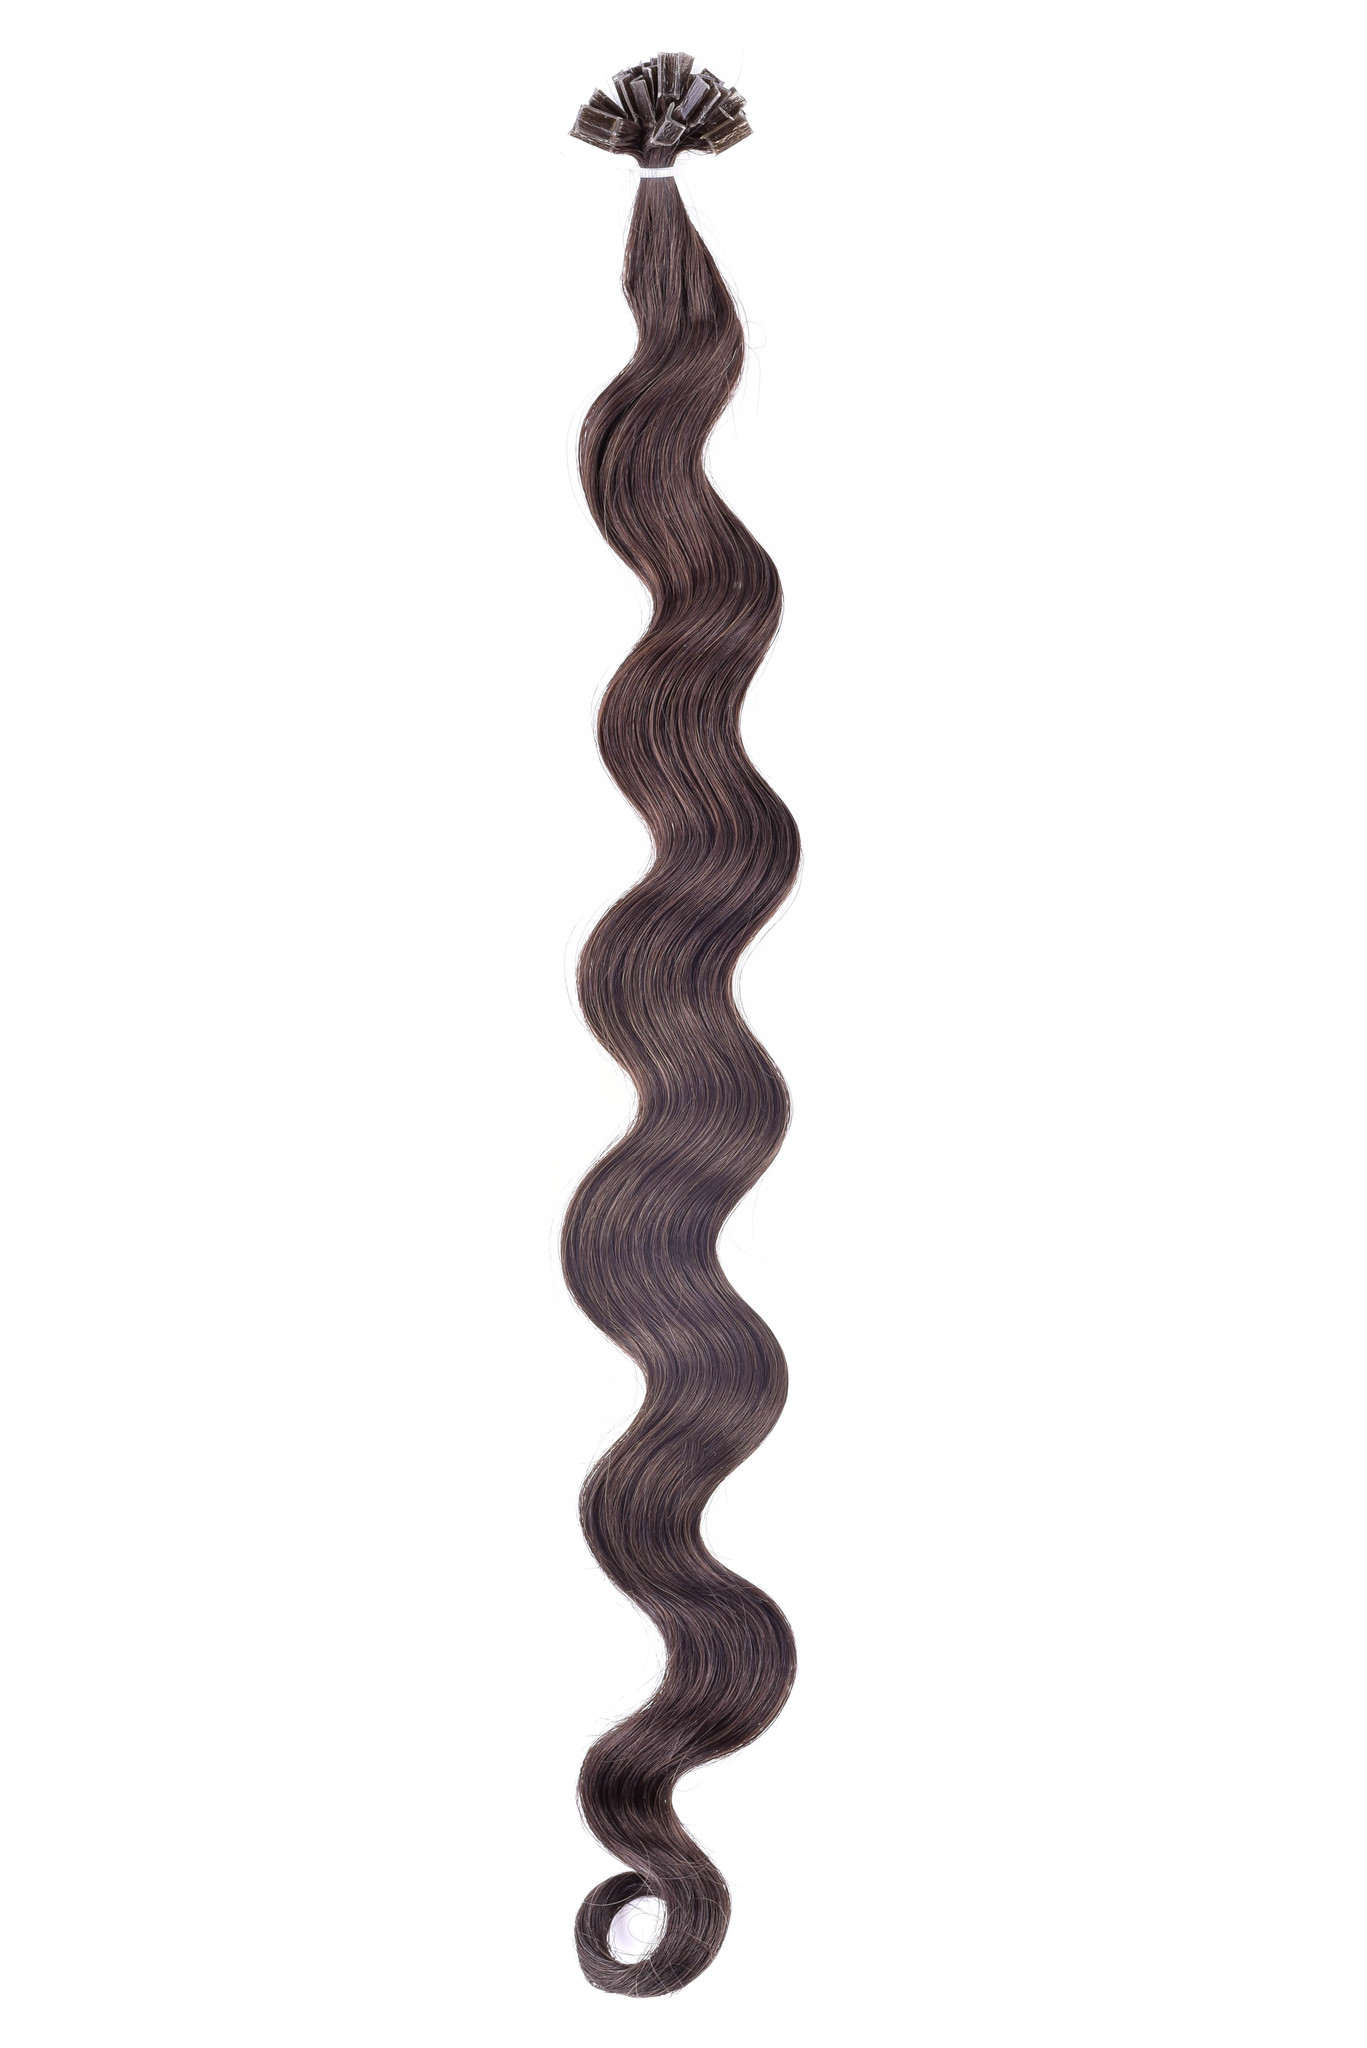 SilverFox Wax Extensions Loose Wave 55cm #22 Hollywood Blonde